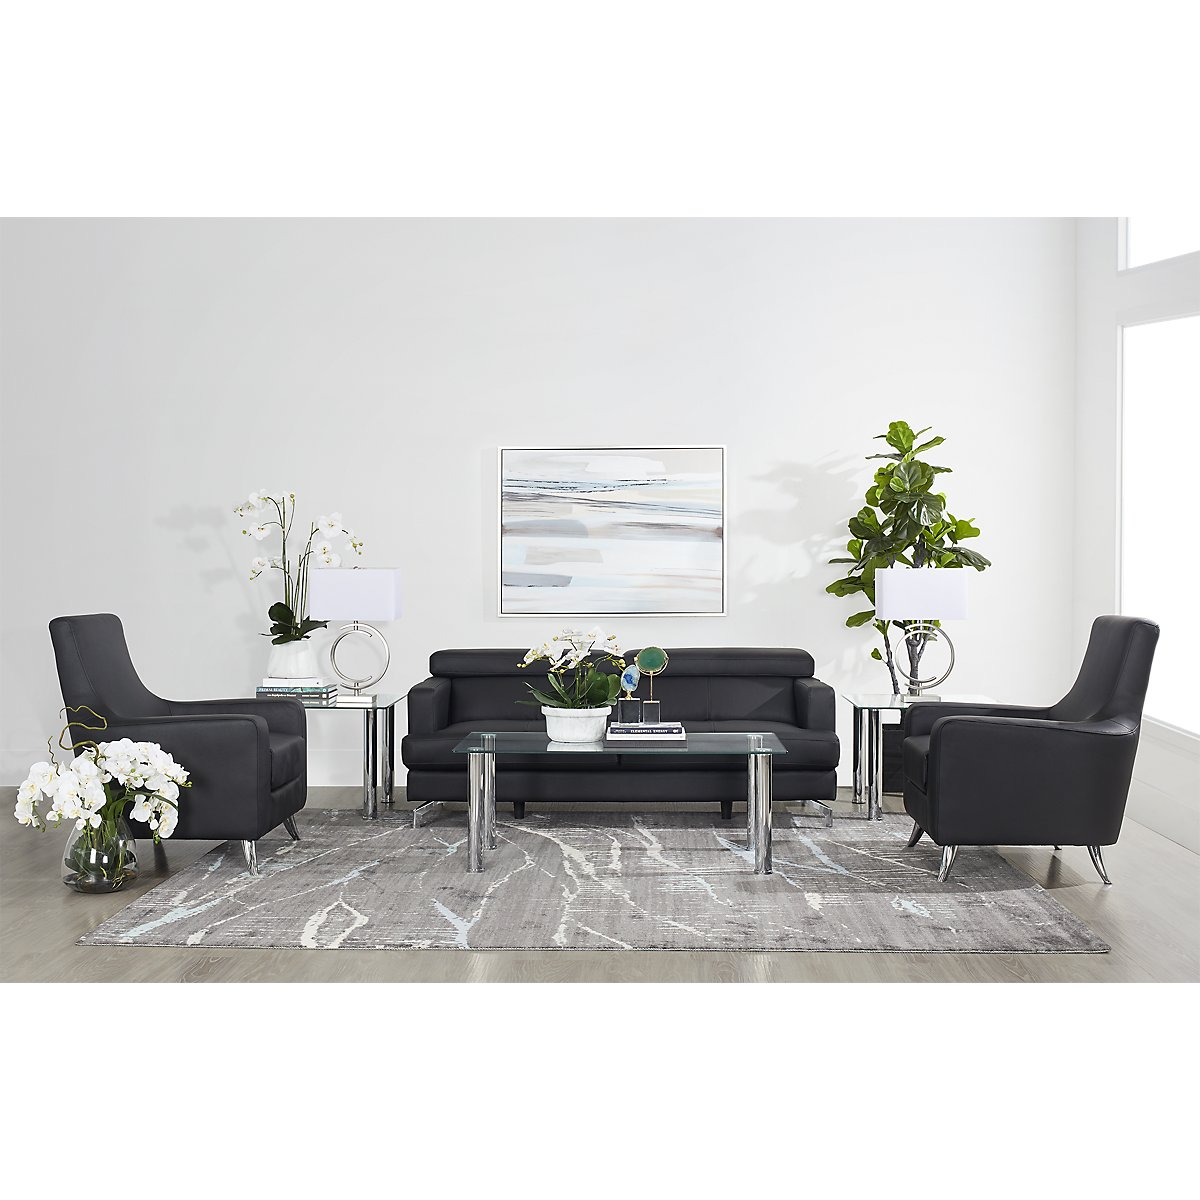 City Furniture: Marquez Black Microfiber 8-Piece Living Room Package